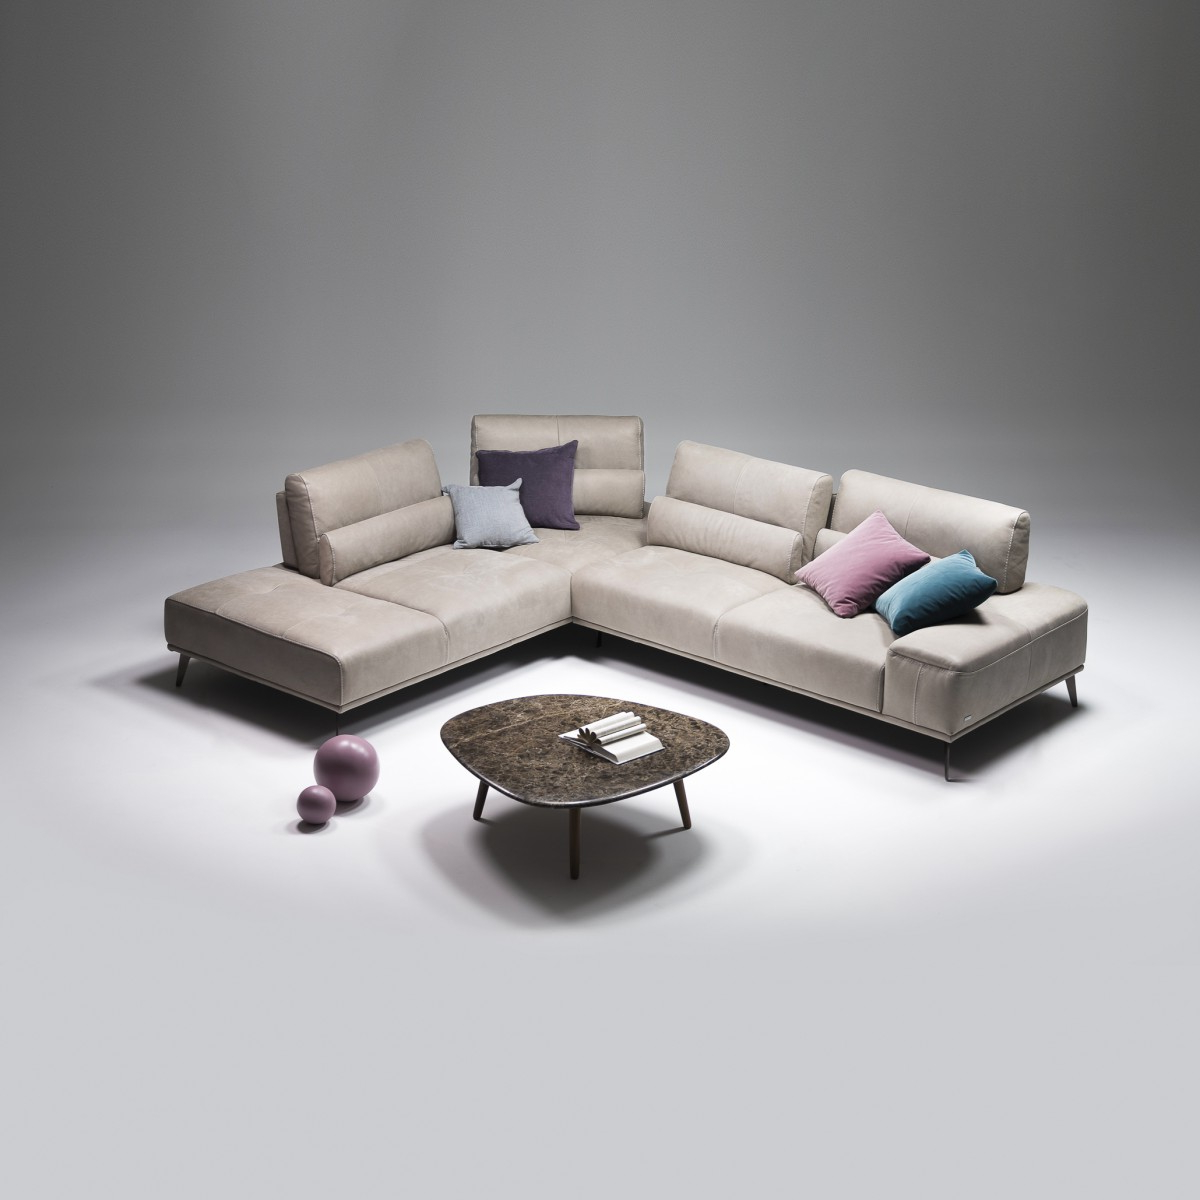 Sofas Tenerife 4pde Tenerife Leather sofa Nicoline Mscape Modern Interiors